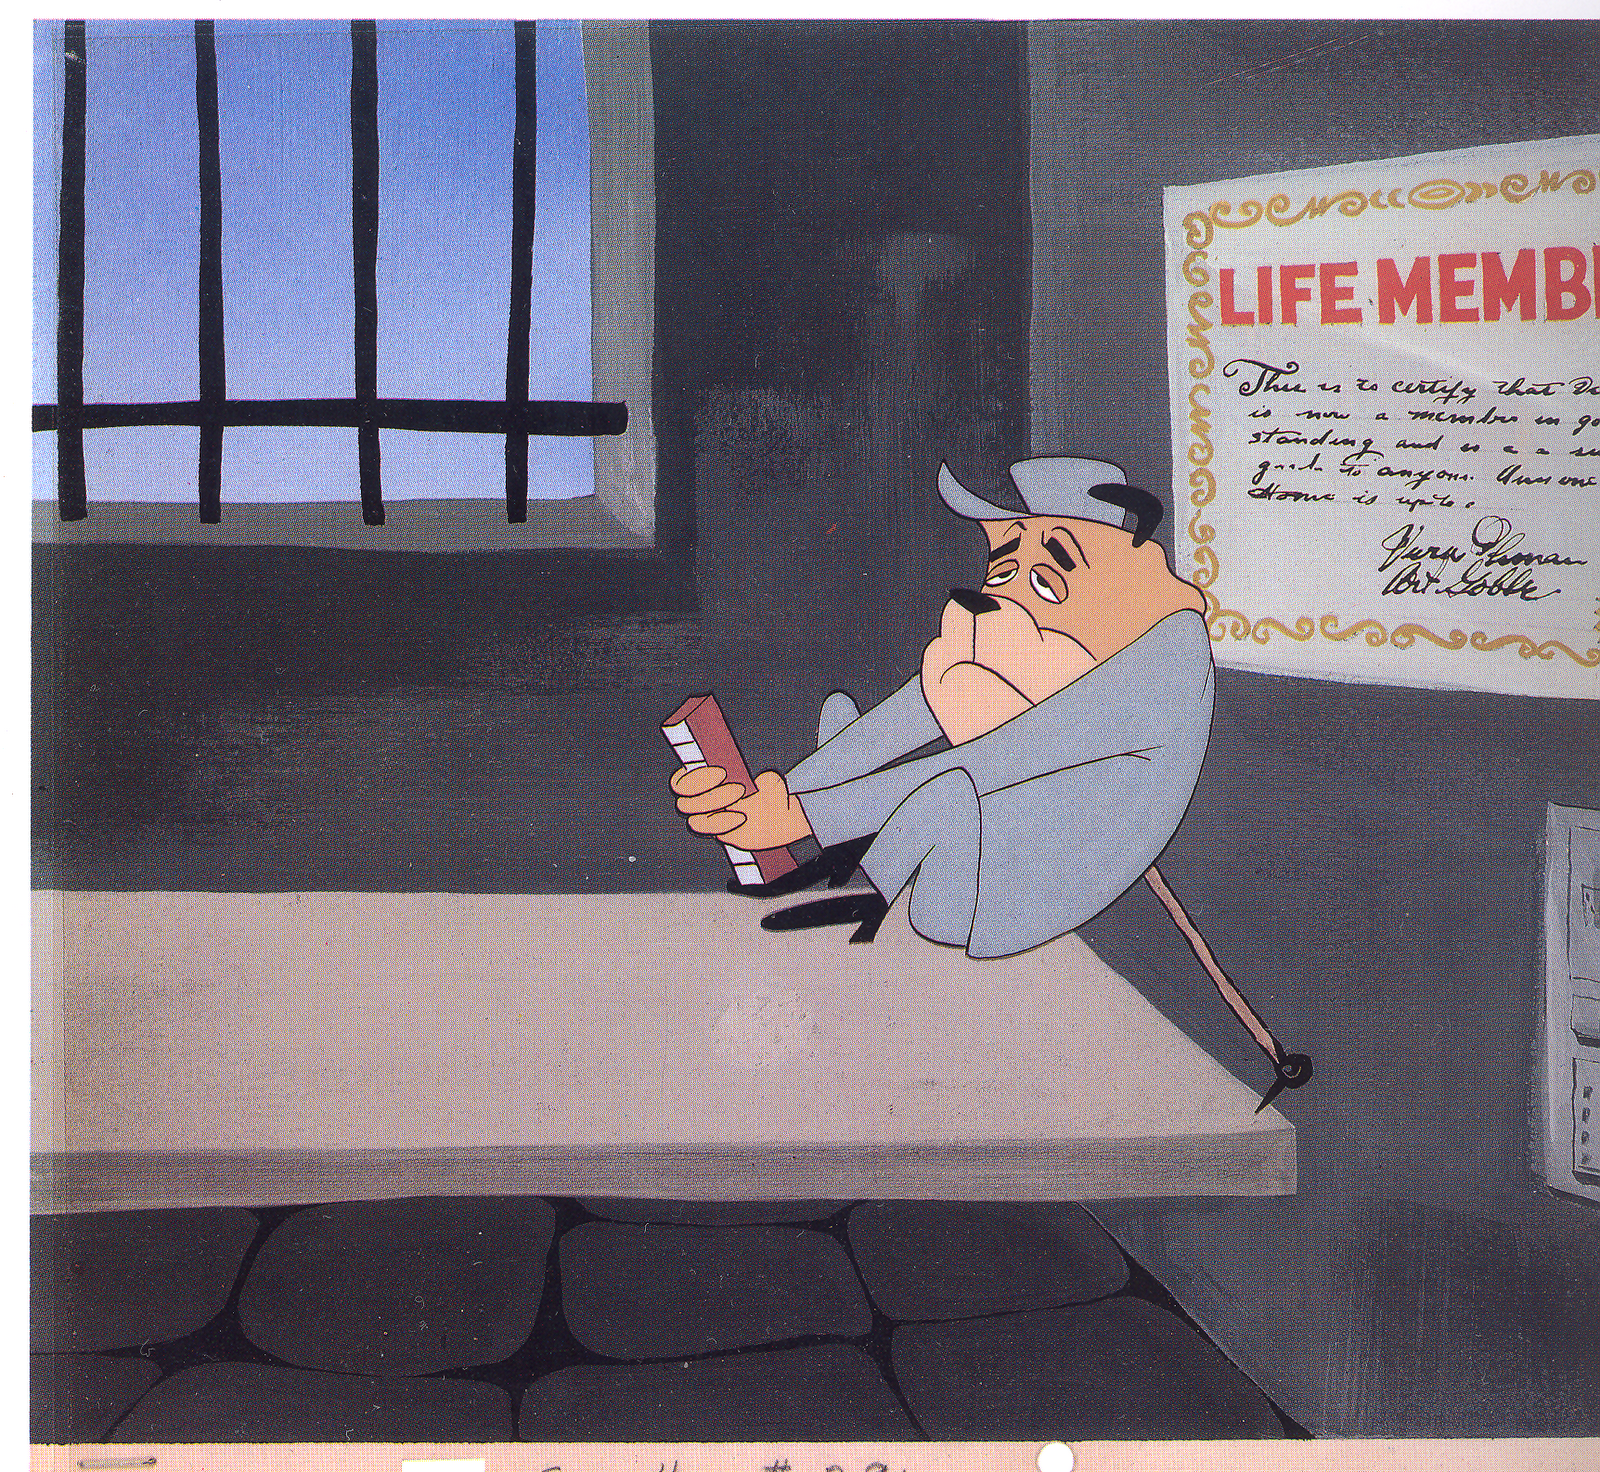 On That Certificate On The Jail Cell In Tex Avery S Cellbound